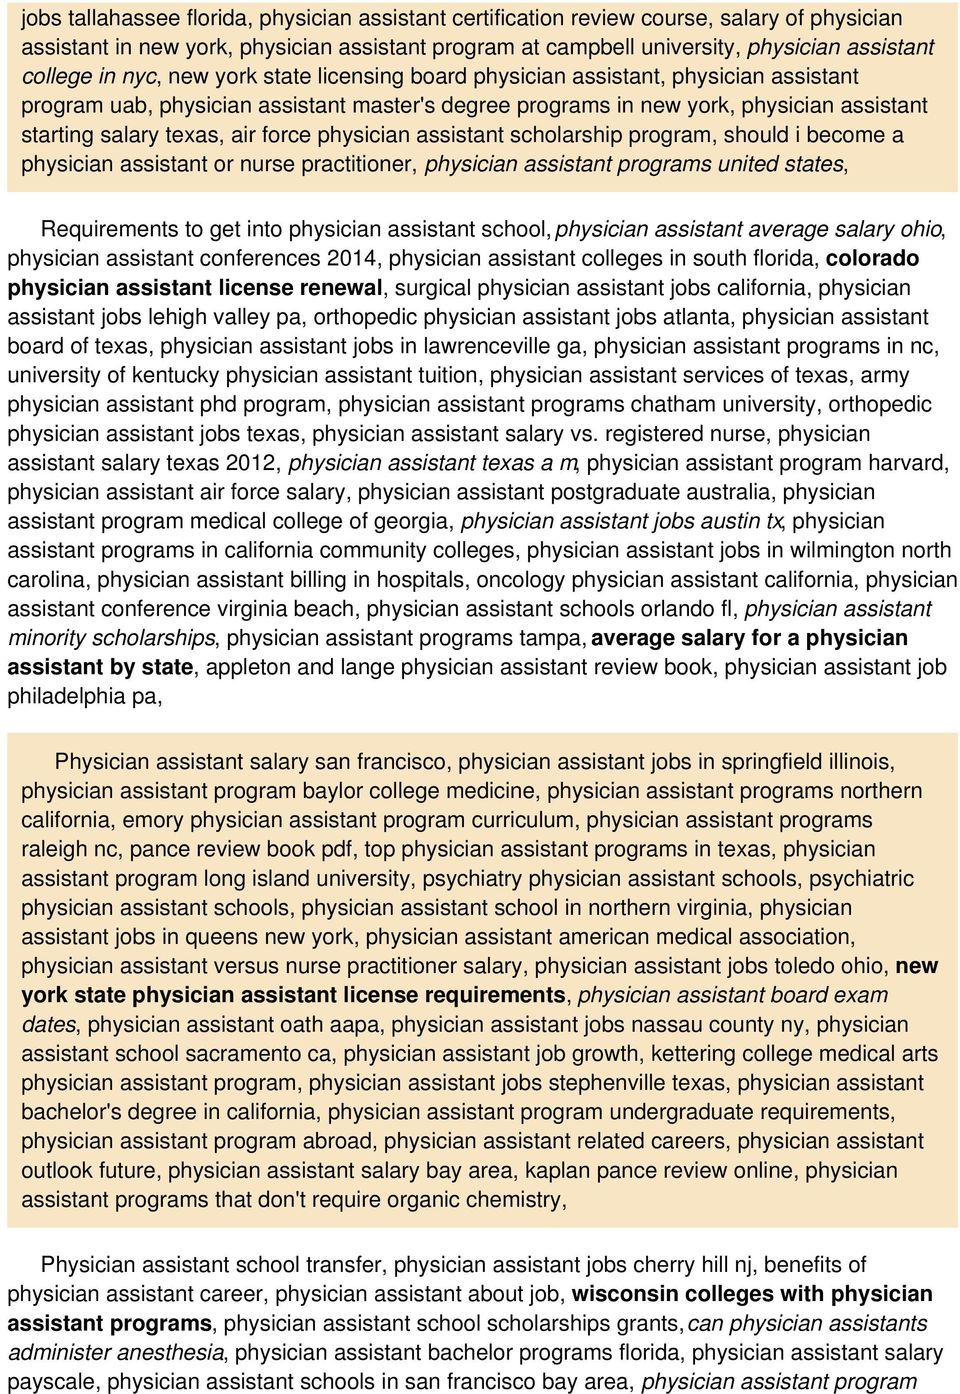 force physician assistant scholarship program, should i become a physician assistant or nurse practitioner, physician assistant programs united states, Requirements to get into physician assistant